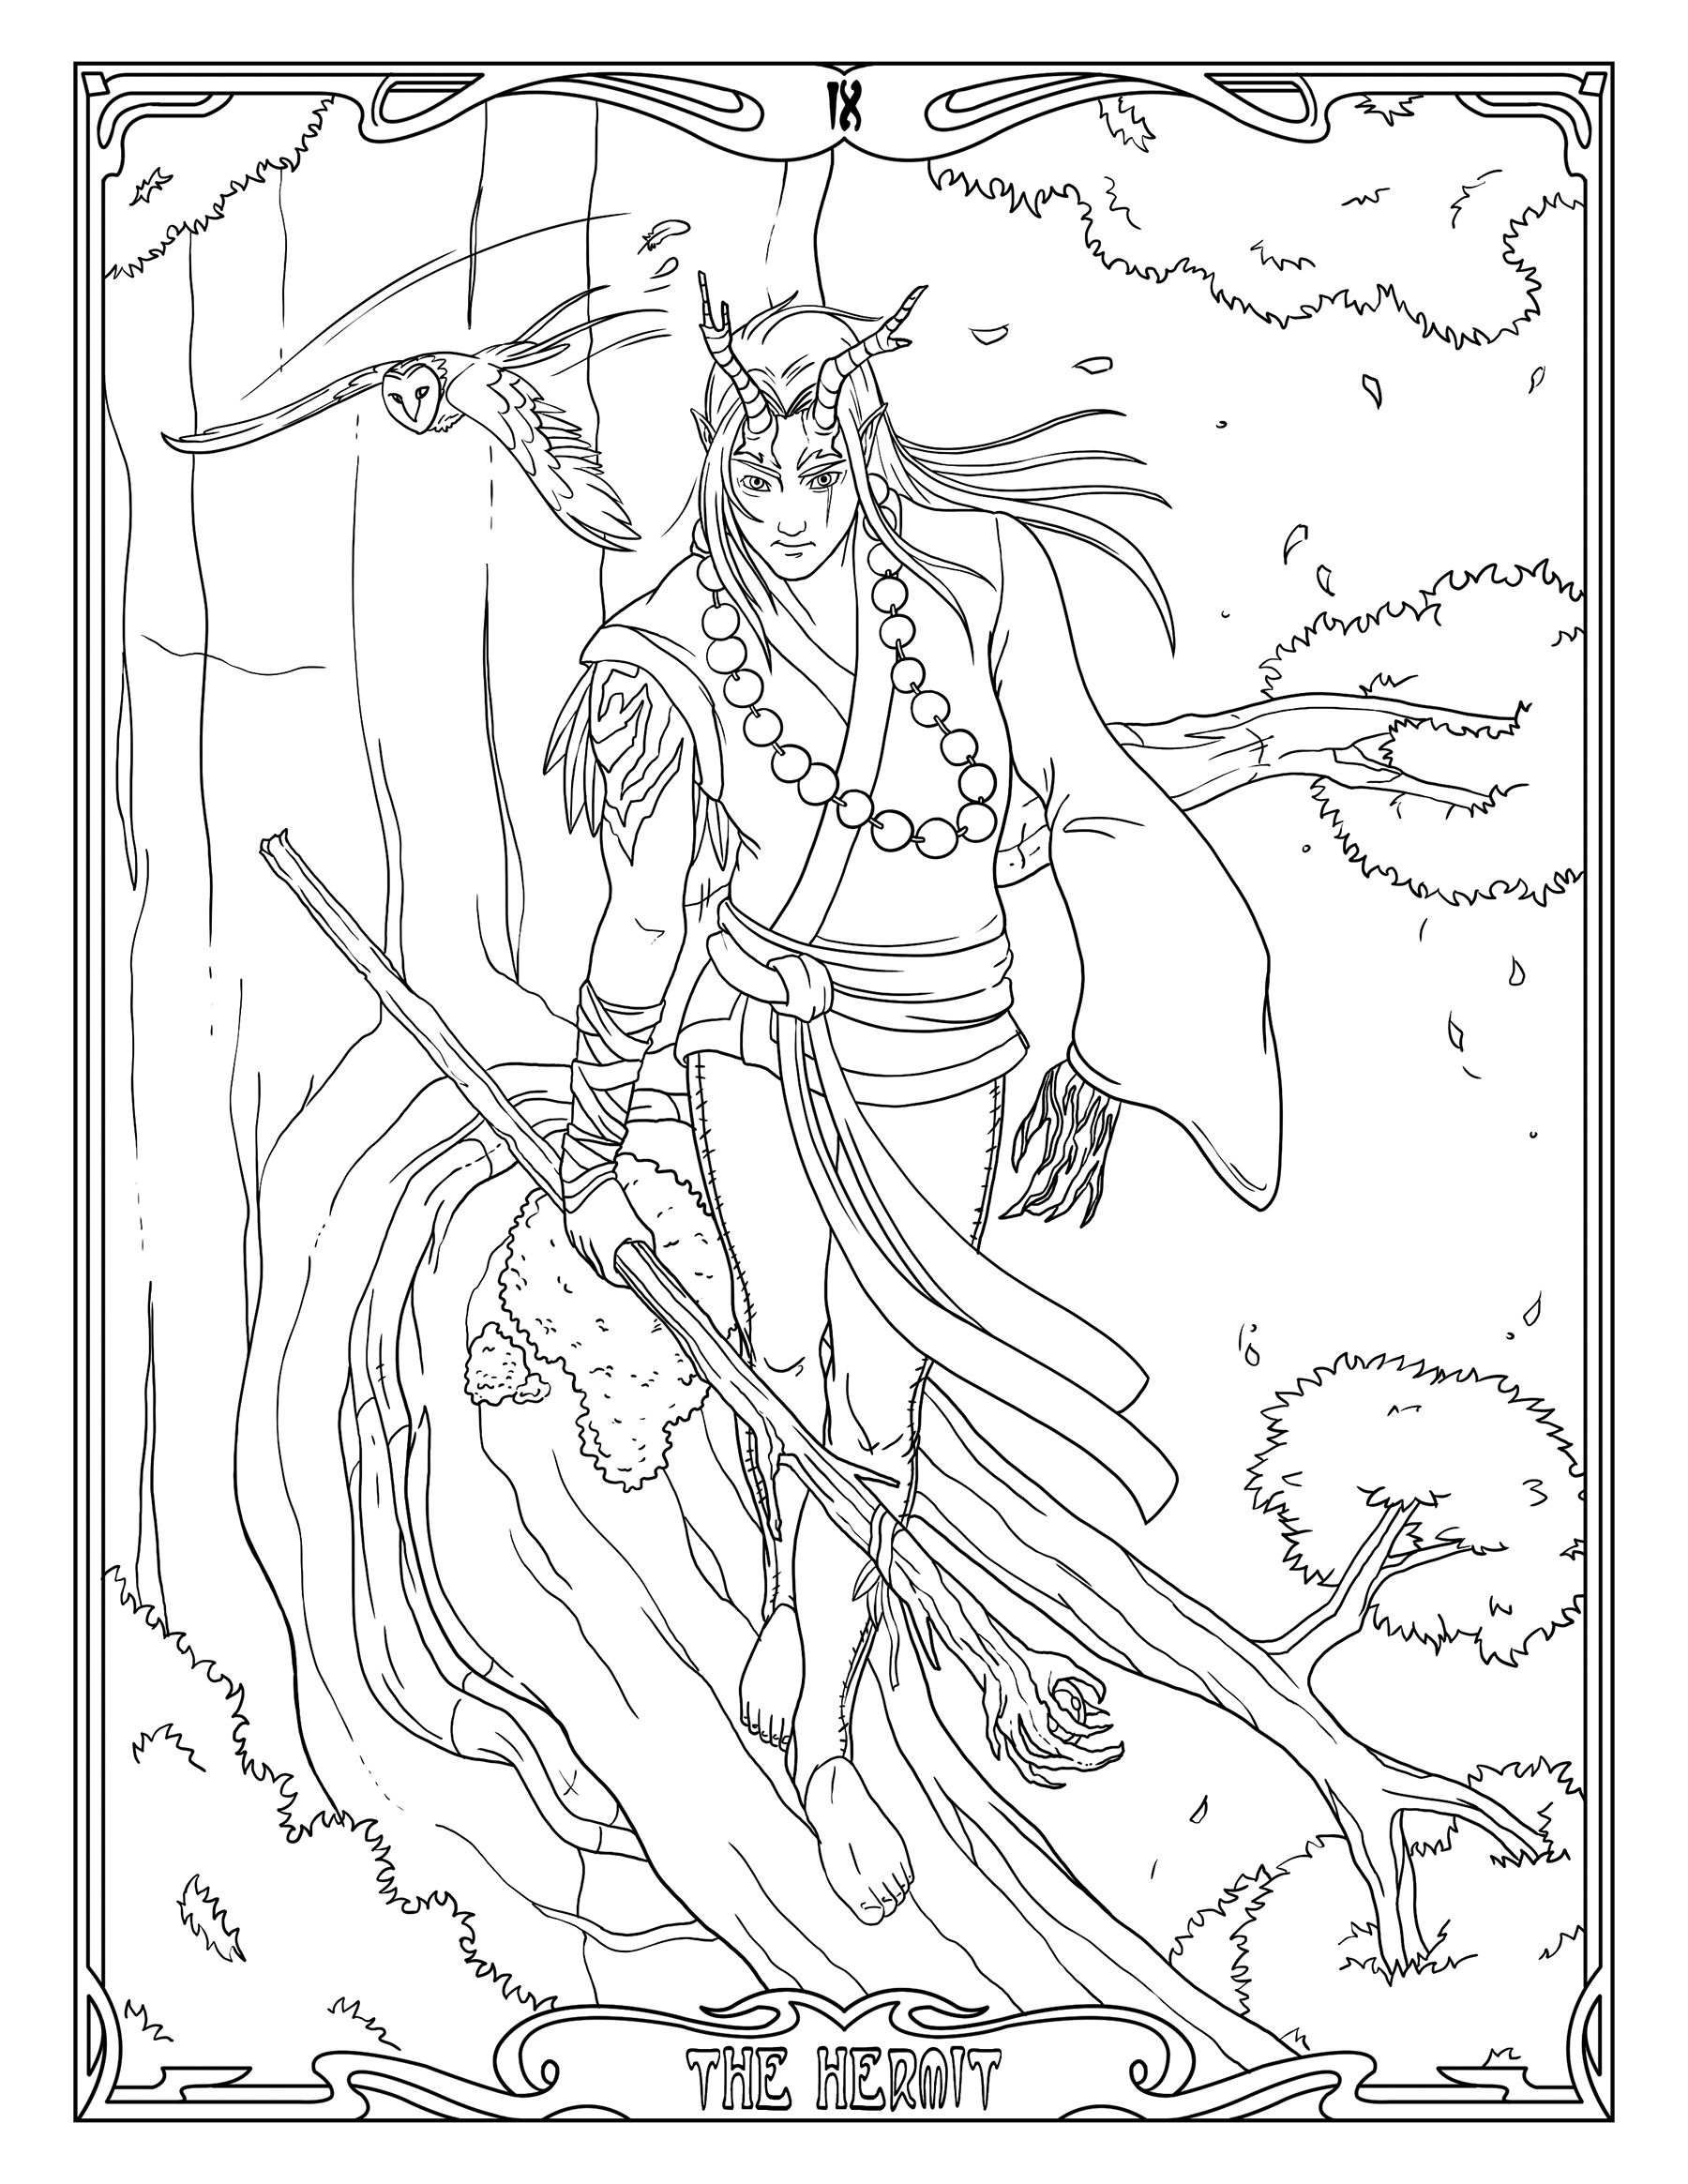 Free Tarot Card Coloring Pages At Getcolorings